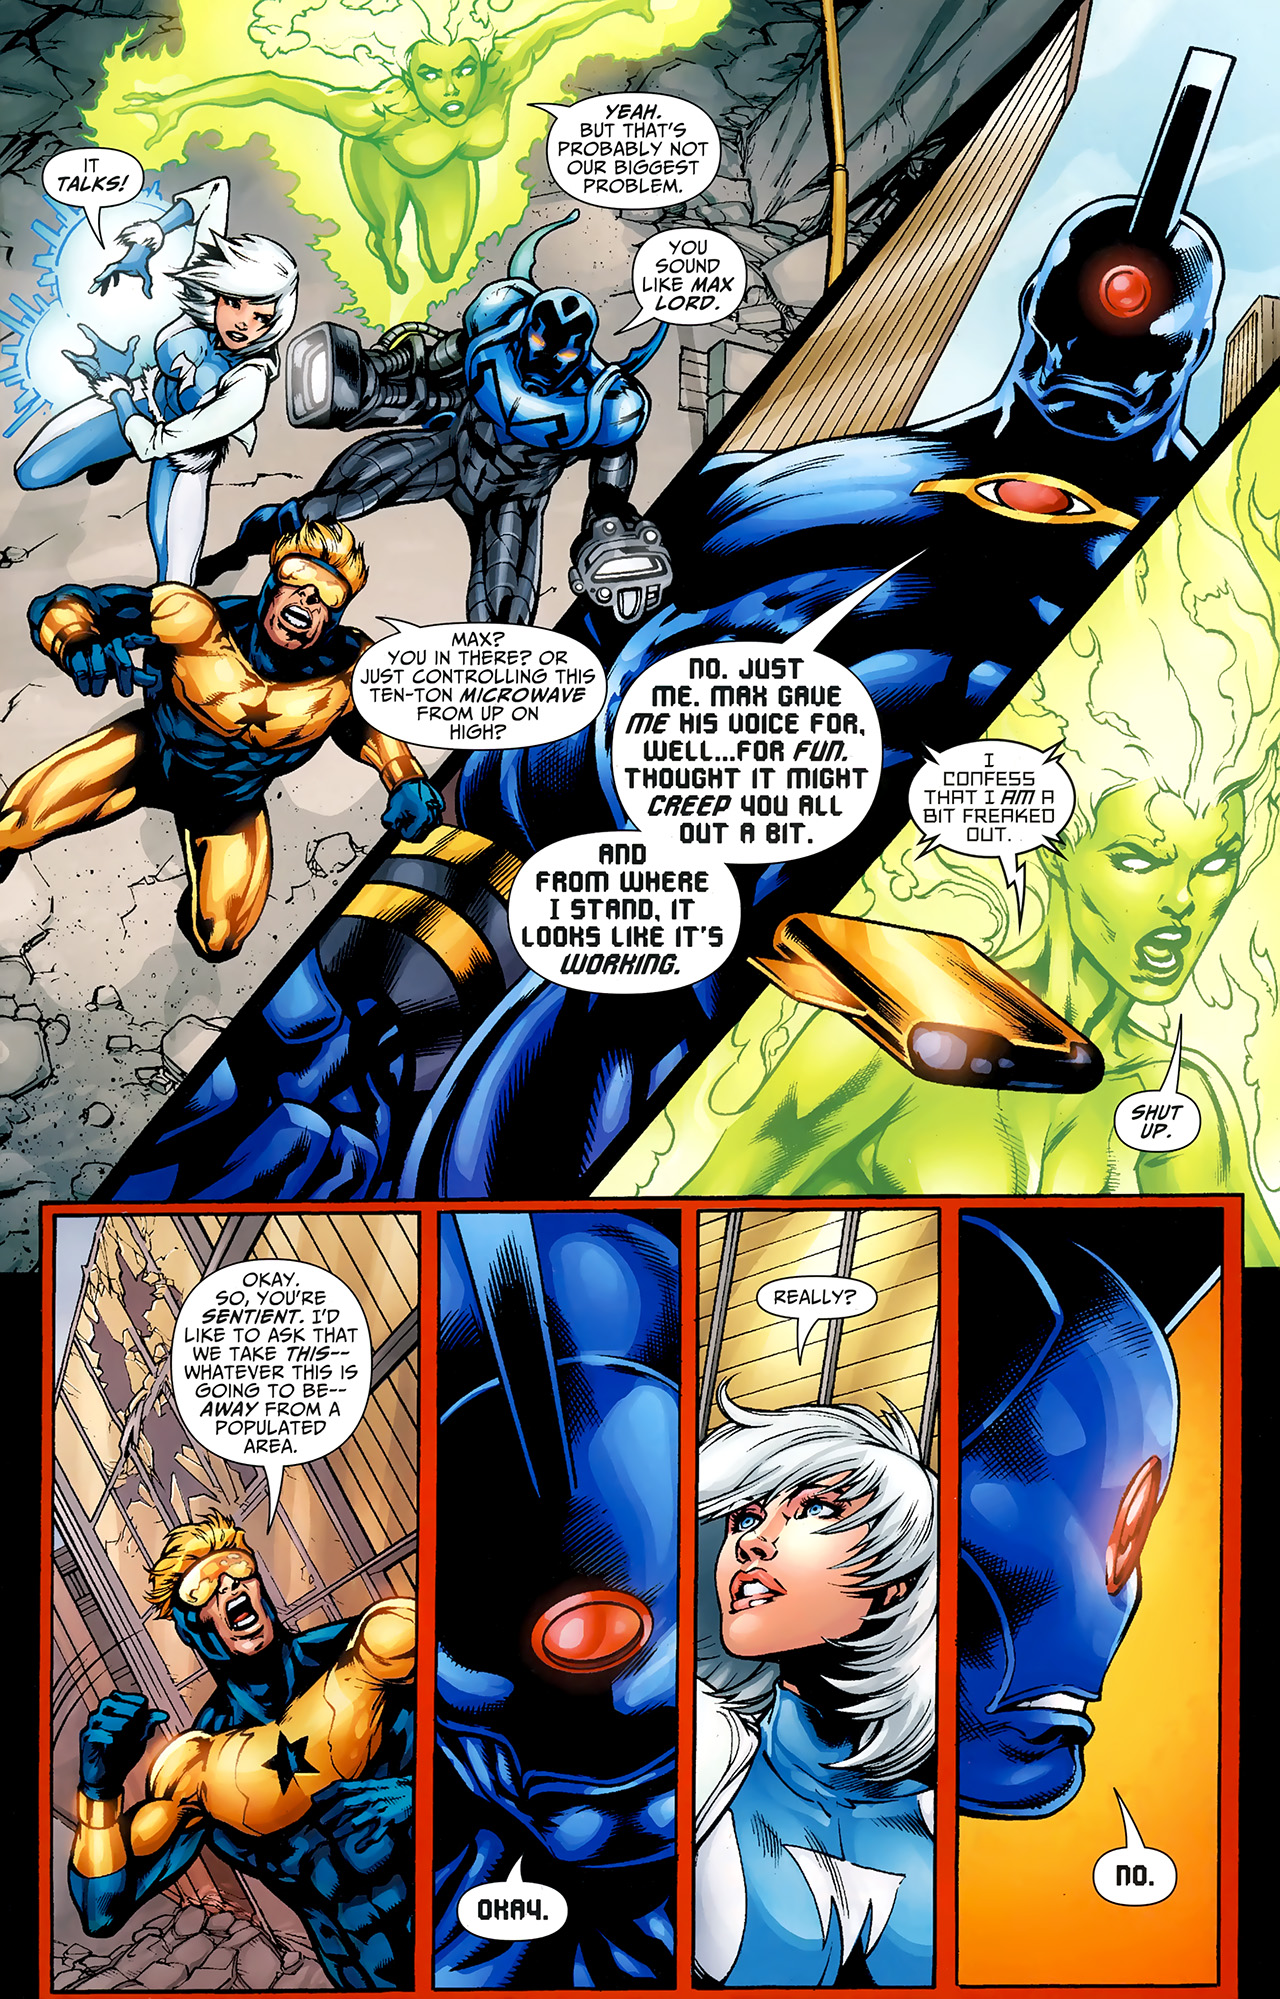 Read online Justice League: Generation Lost comic -  Issue #23 - 14